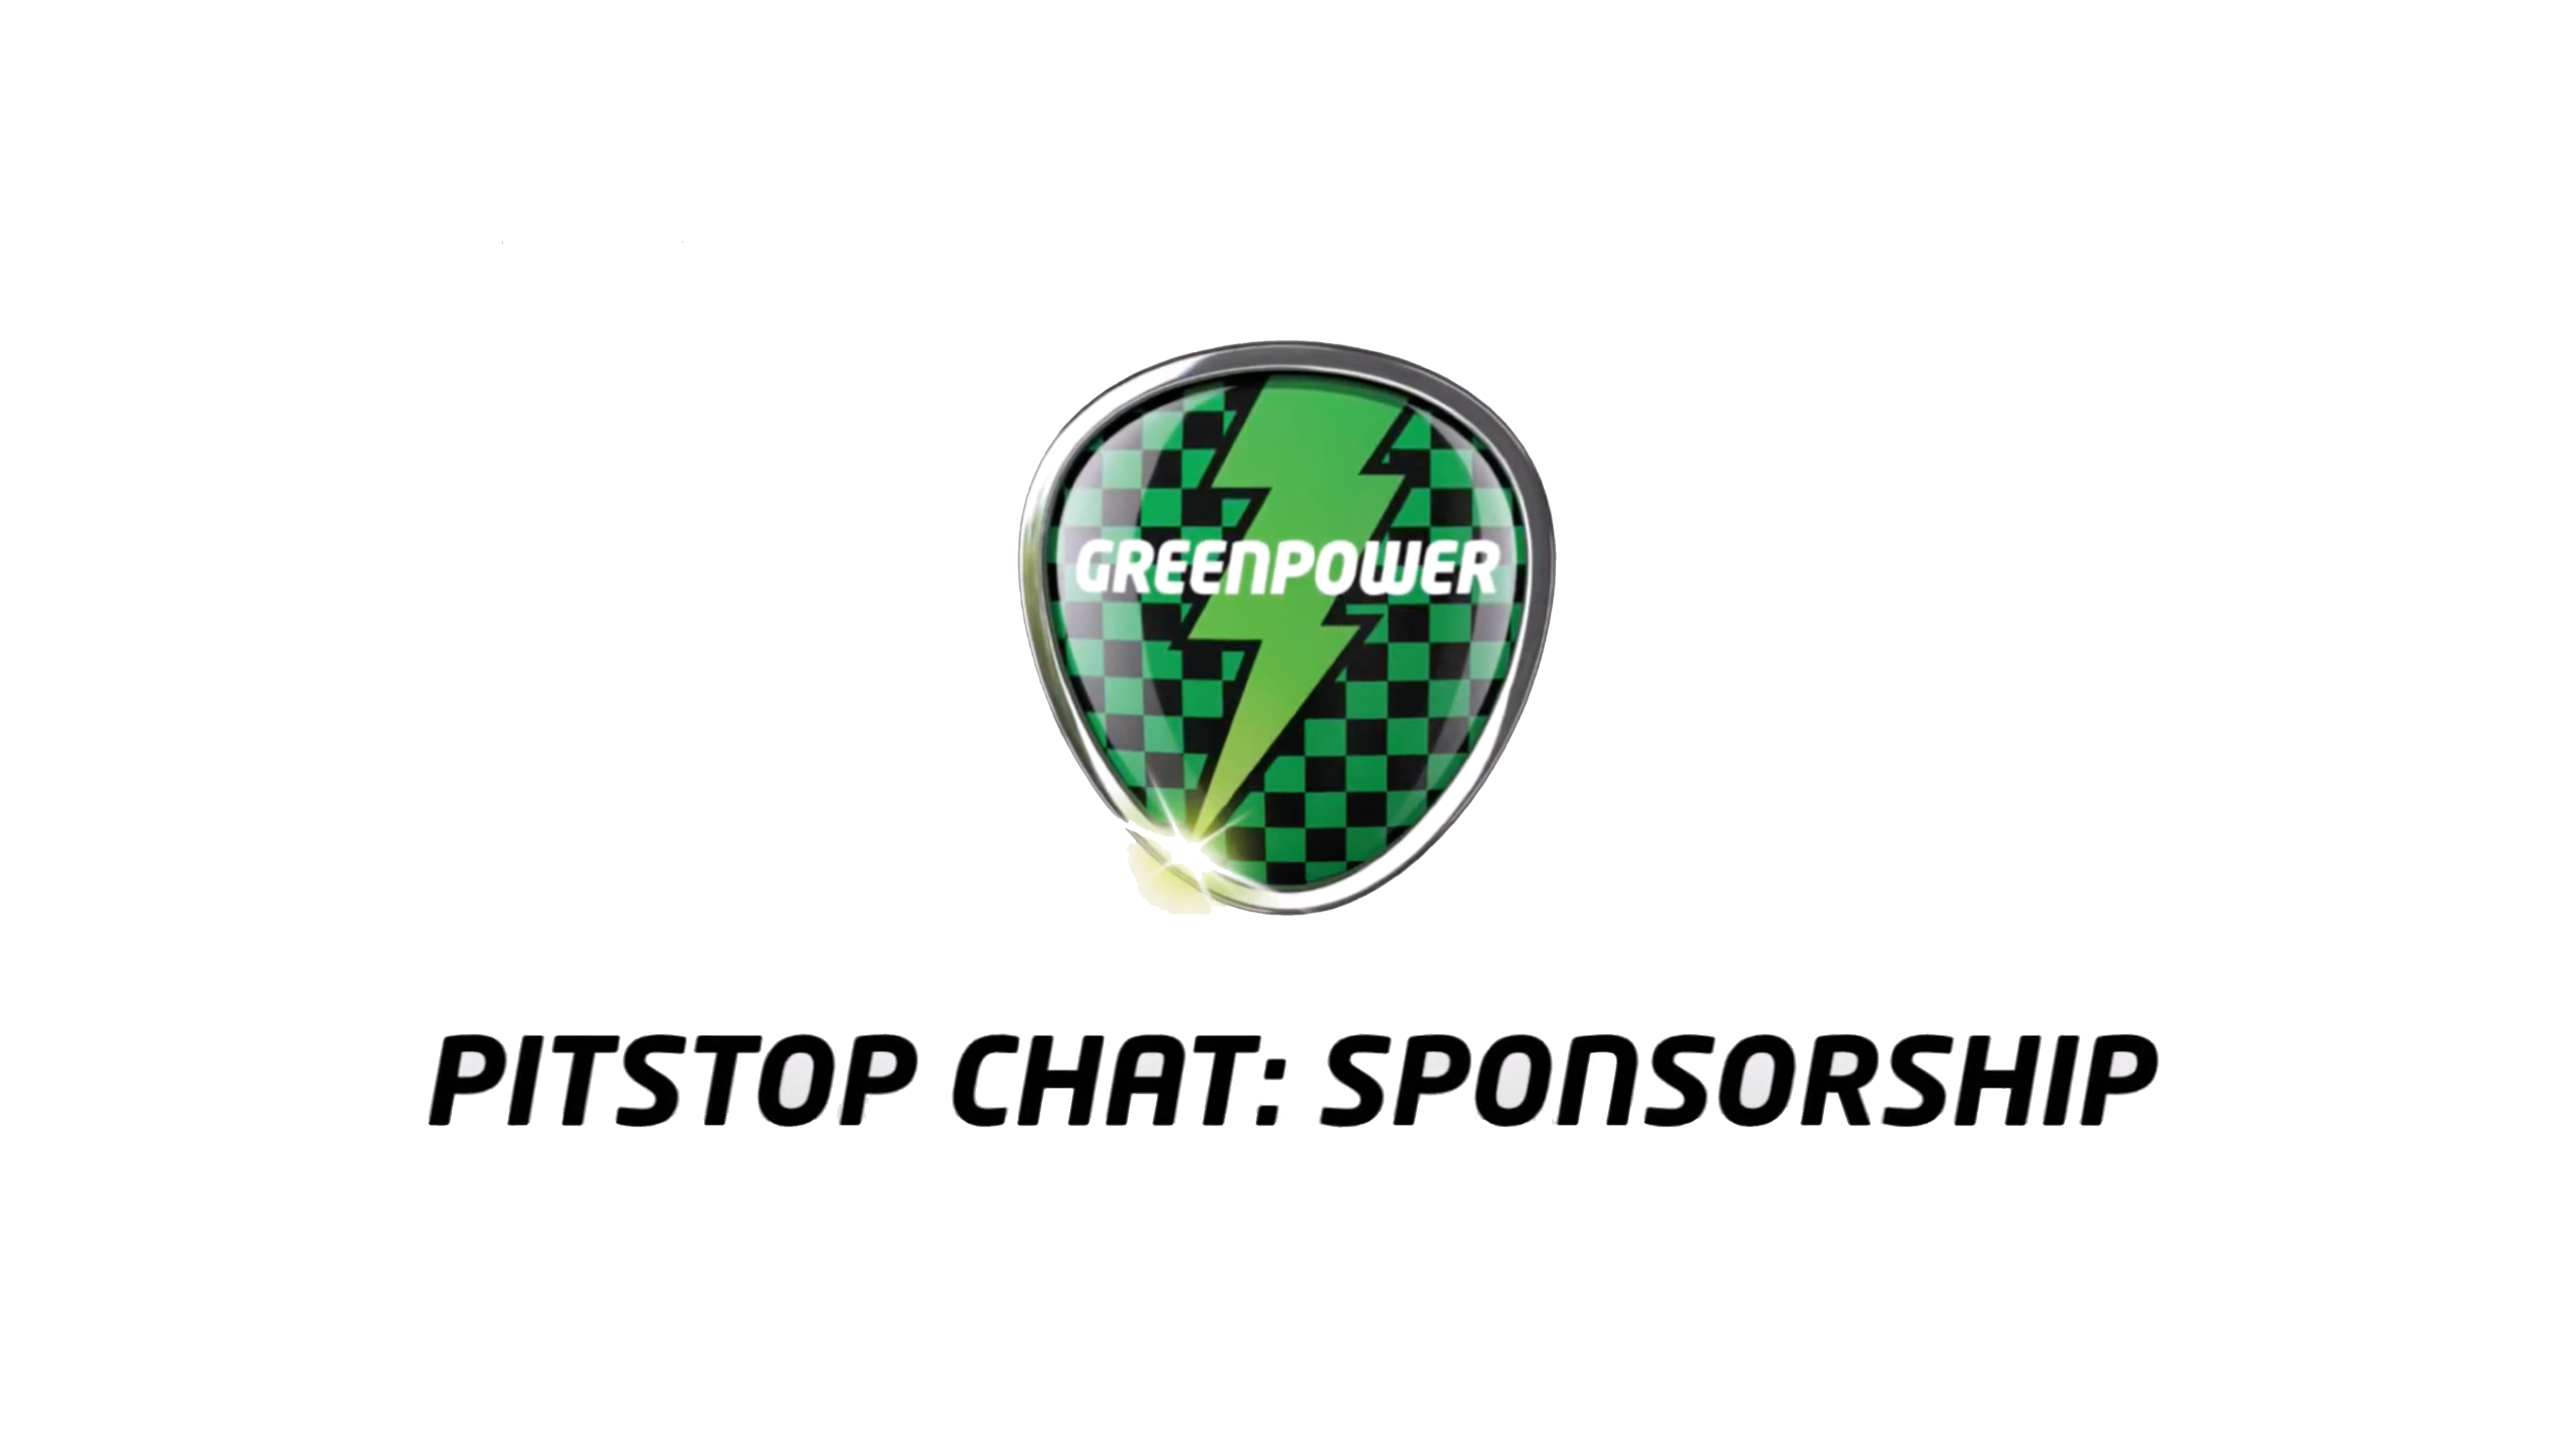 Talking sponsorship with Greenpower